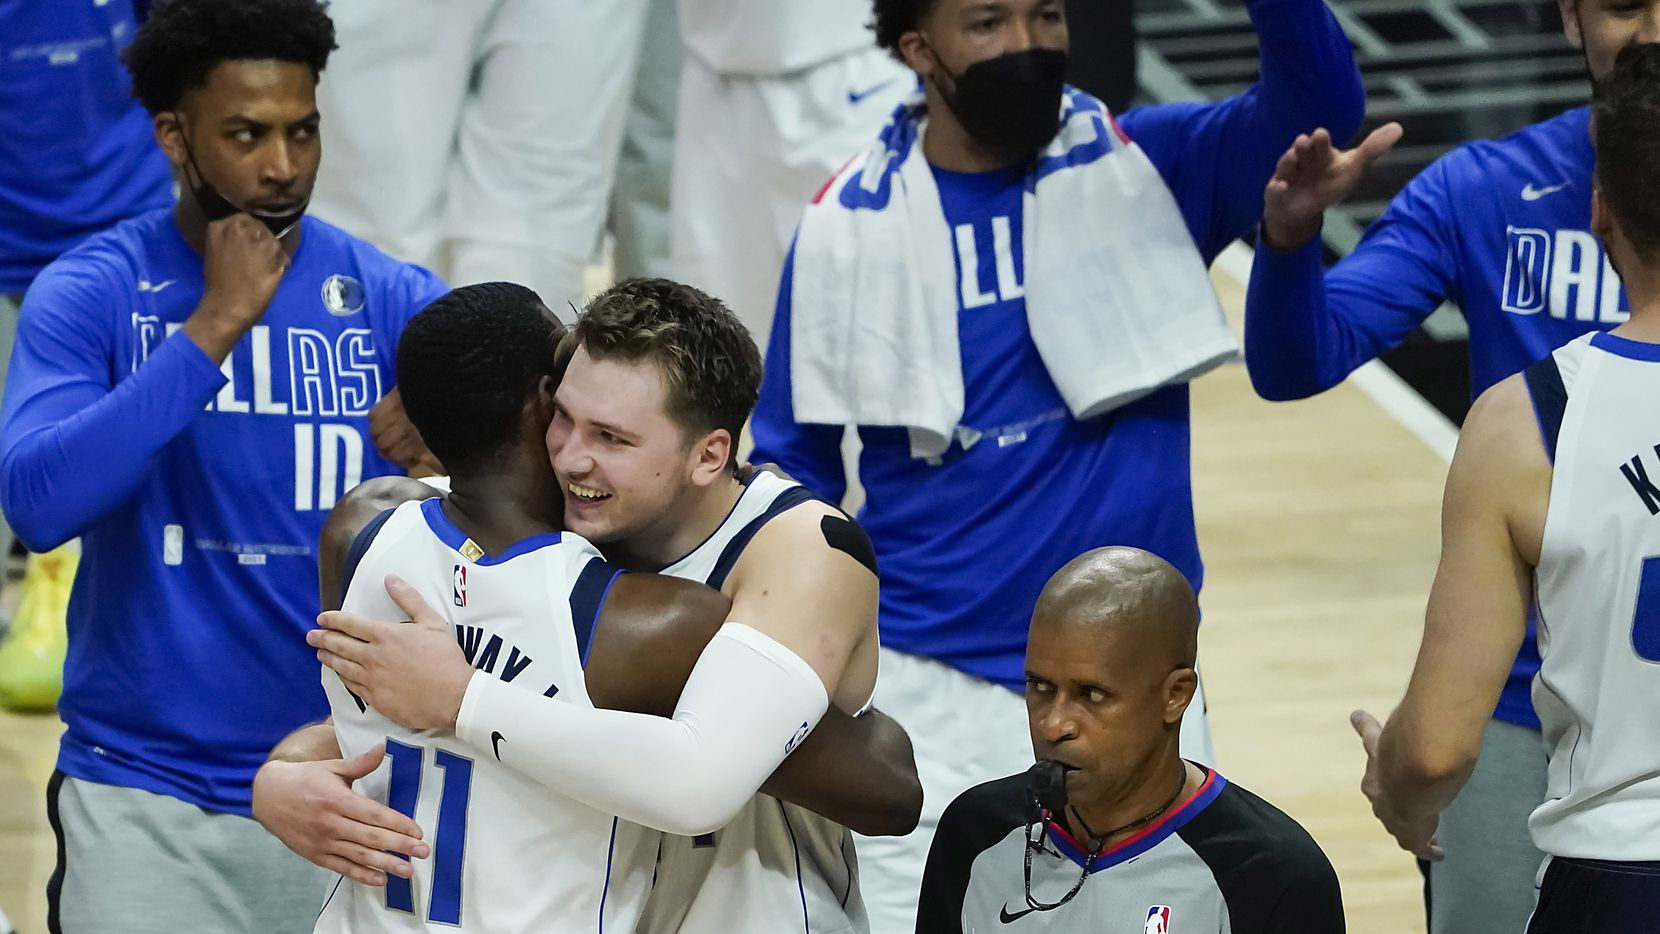 Dallas Mavericks guard Luka Doncic celebrates with forward Tim Hardaway Jr. (11) after the final buzzer of a win over the LA Clippers during in an NBA playoff basketball game at the Staples Center on Wednesday, June 2, 2021, in Los Angeles. The Mavericks won the game 105-100.